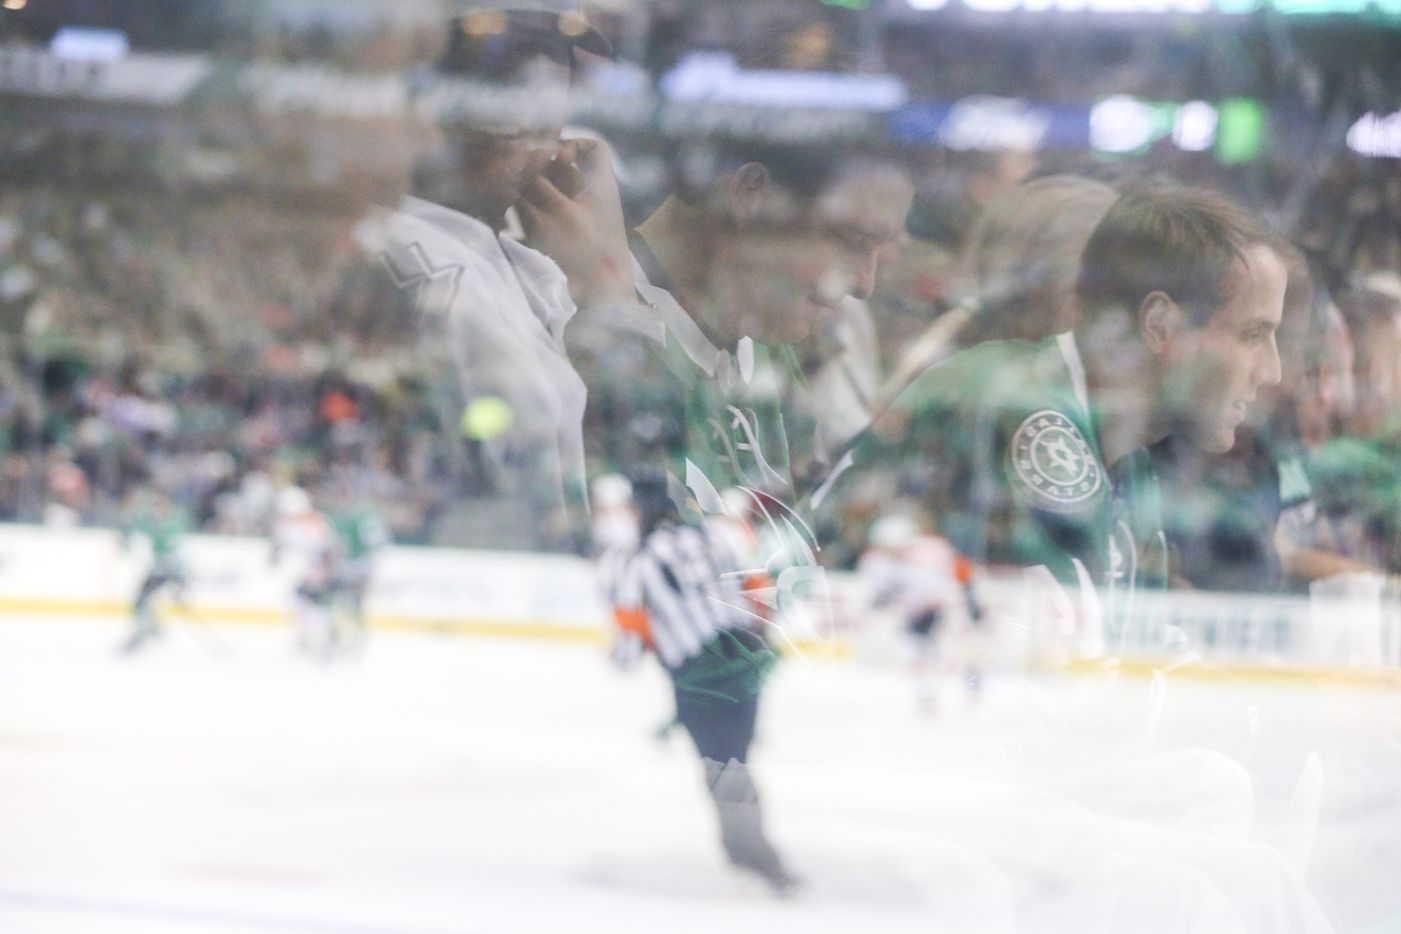 Stars fan Jeffrey Brown watches as the Stars take on the the Philadelphia Flyers during the second period of an NHL hockey game at American Airlines Center in Dallas on Tuesday, April 2, 2019.